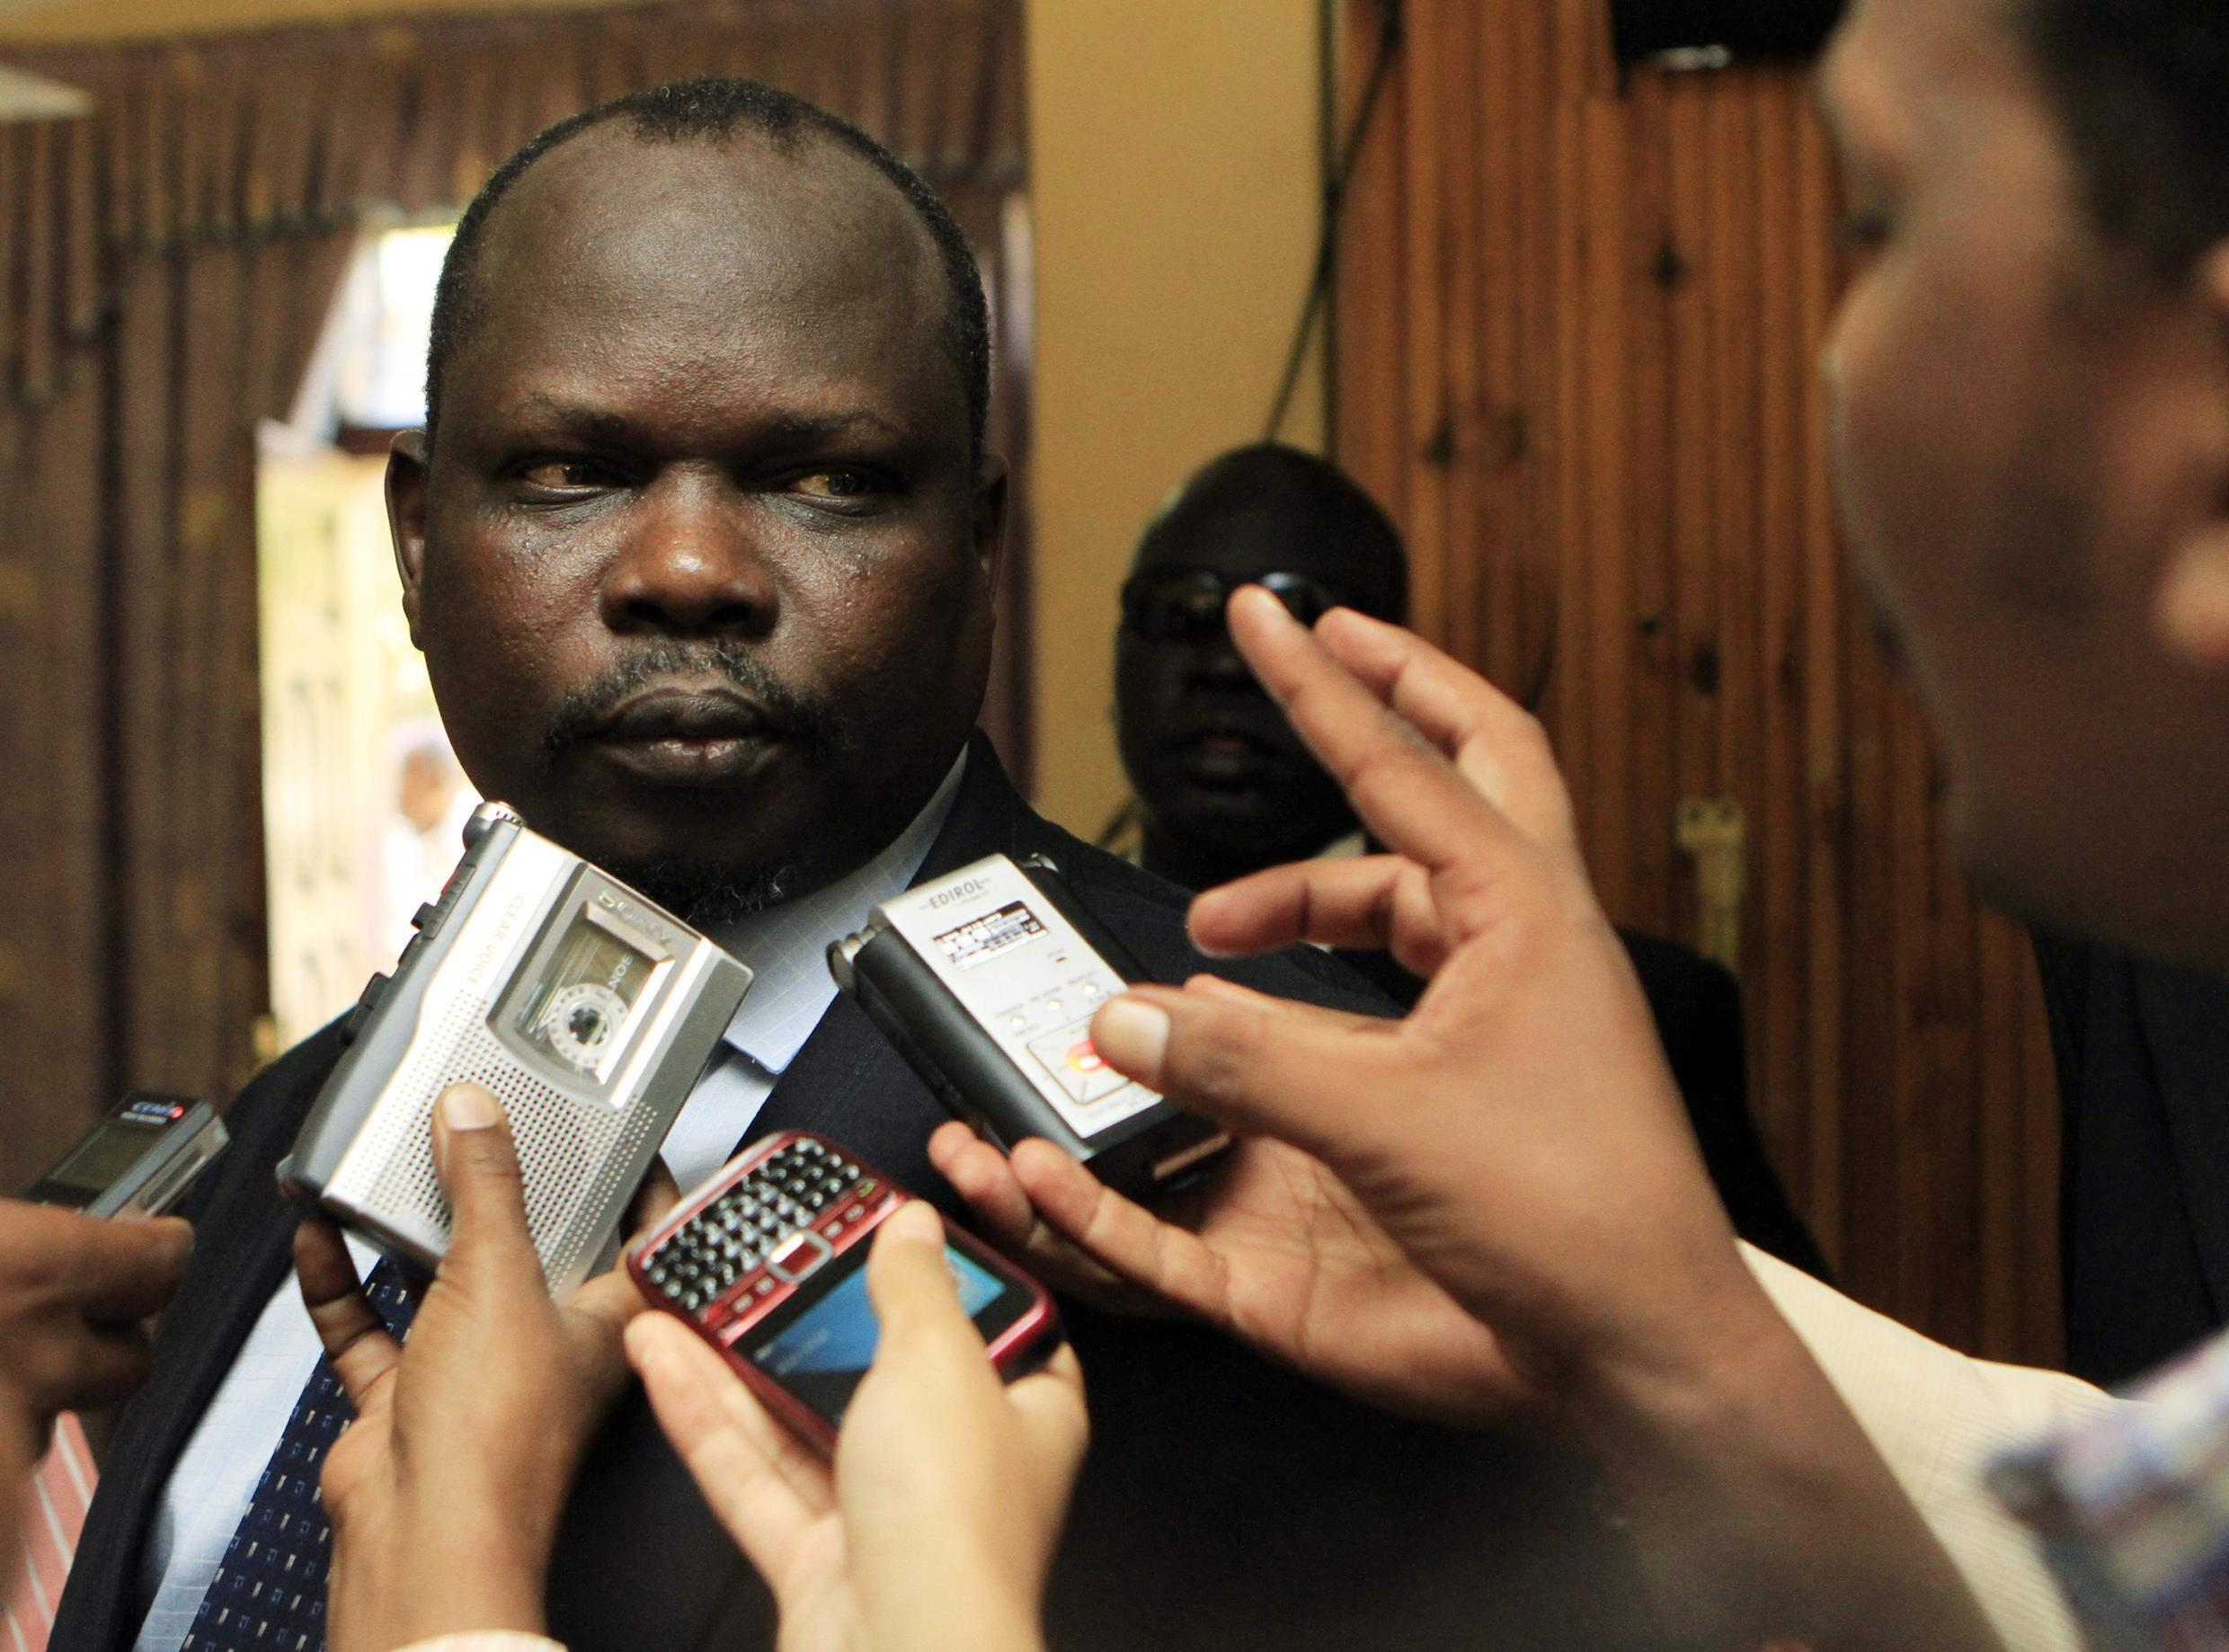 Pagan Amum had previously been accused of plotting a coup by President Salva Kiir's government